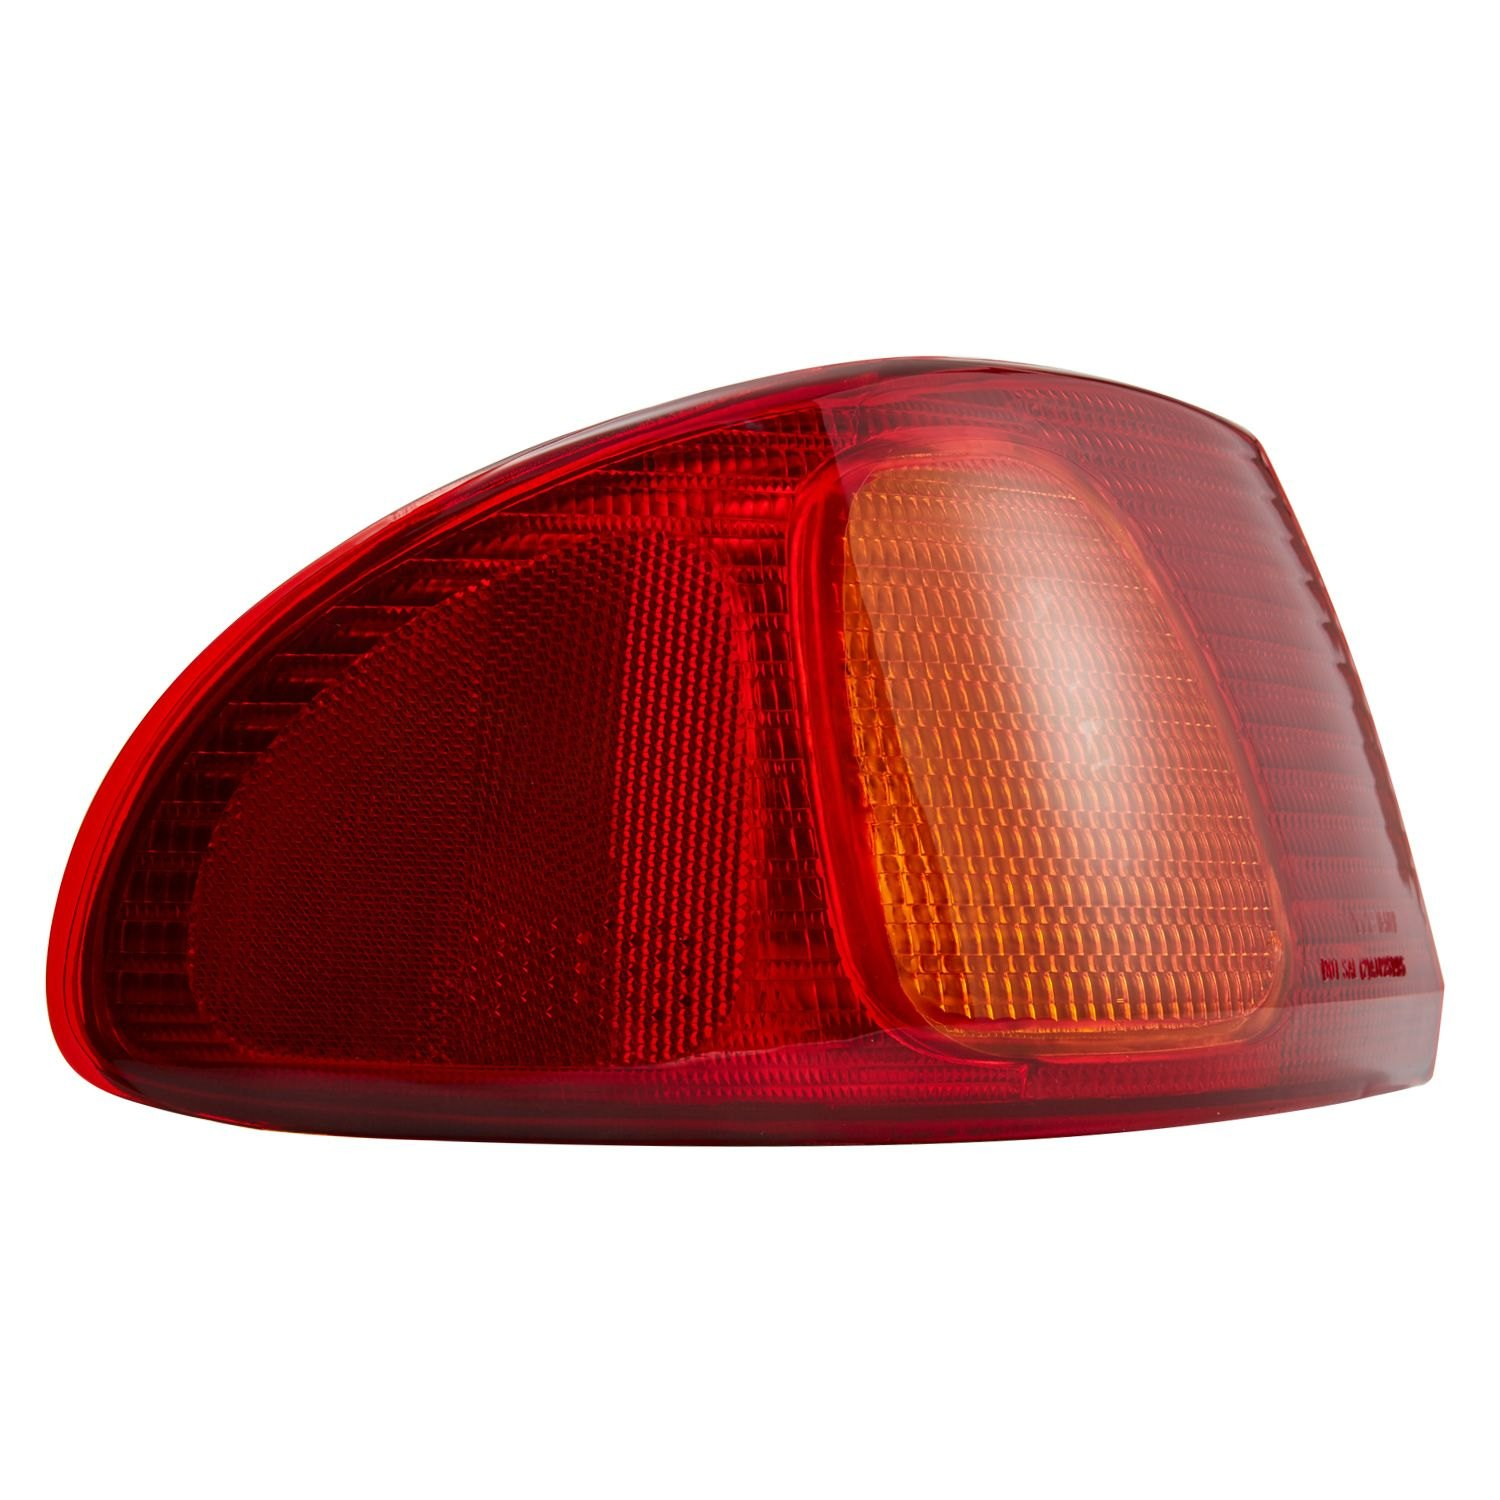 tyc toyota corolla 2001 2002 replacement tail light. Black Bedroom Furniture Sets. Home Design Ideas